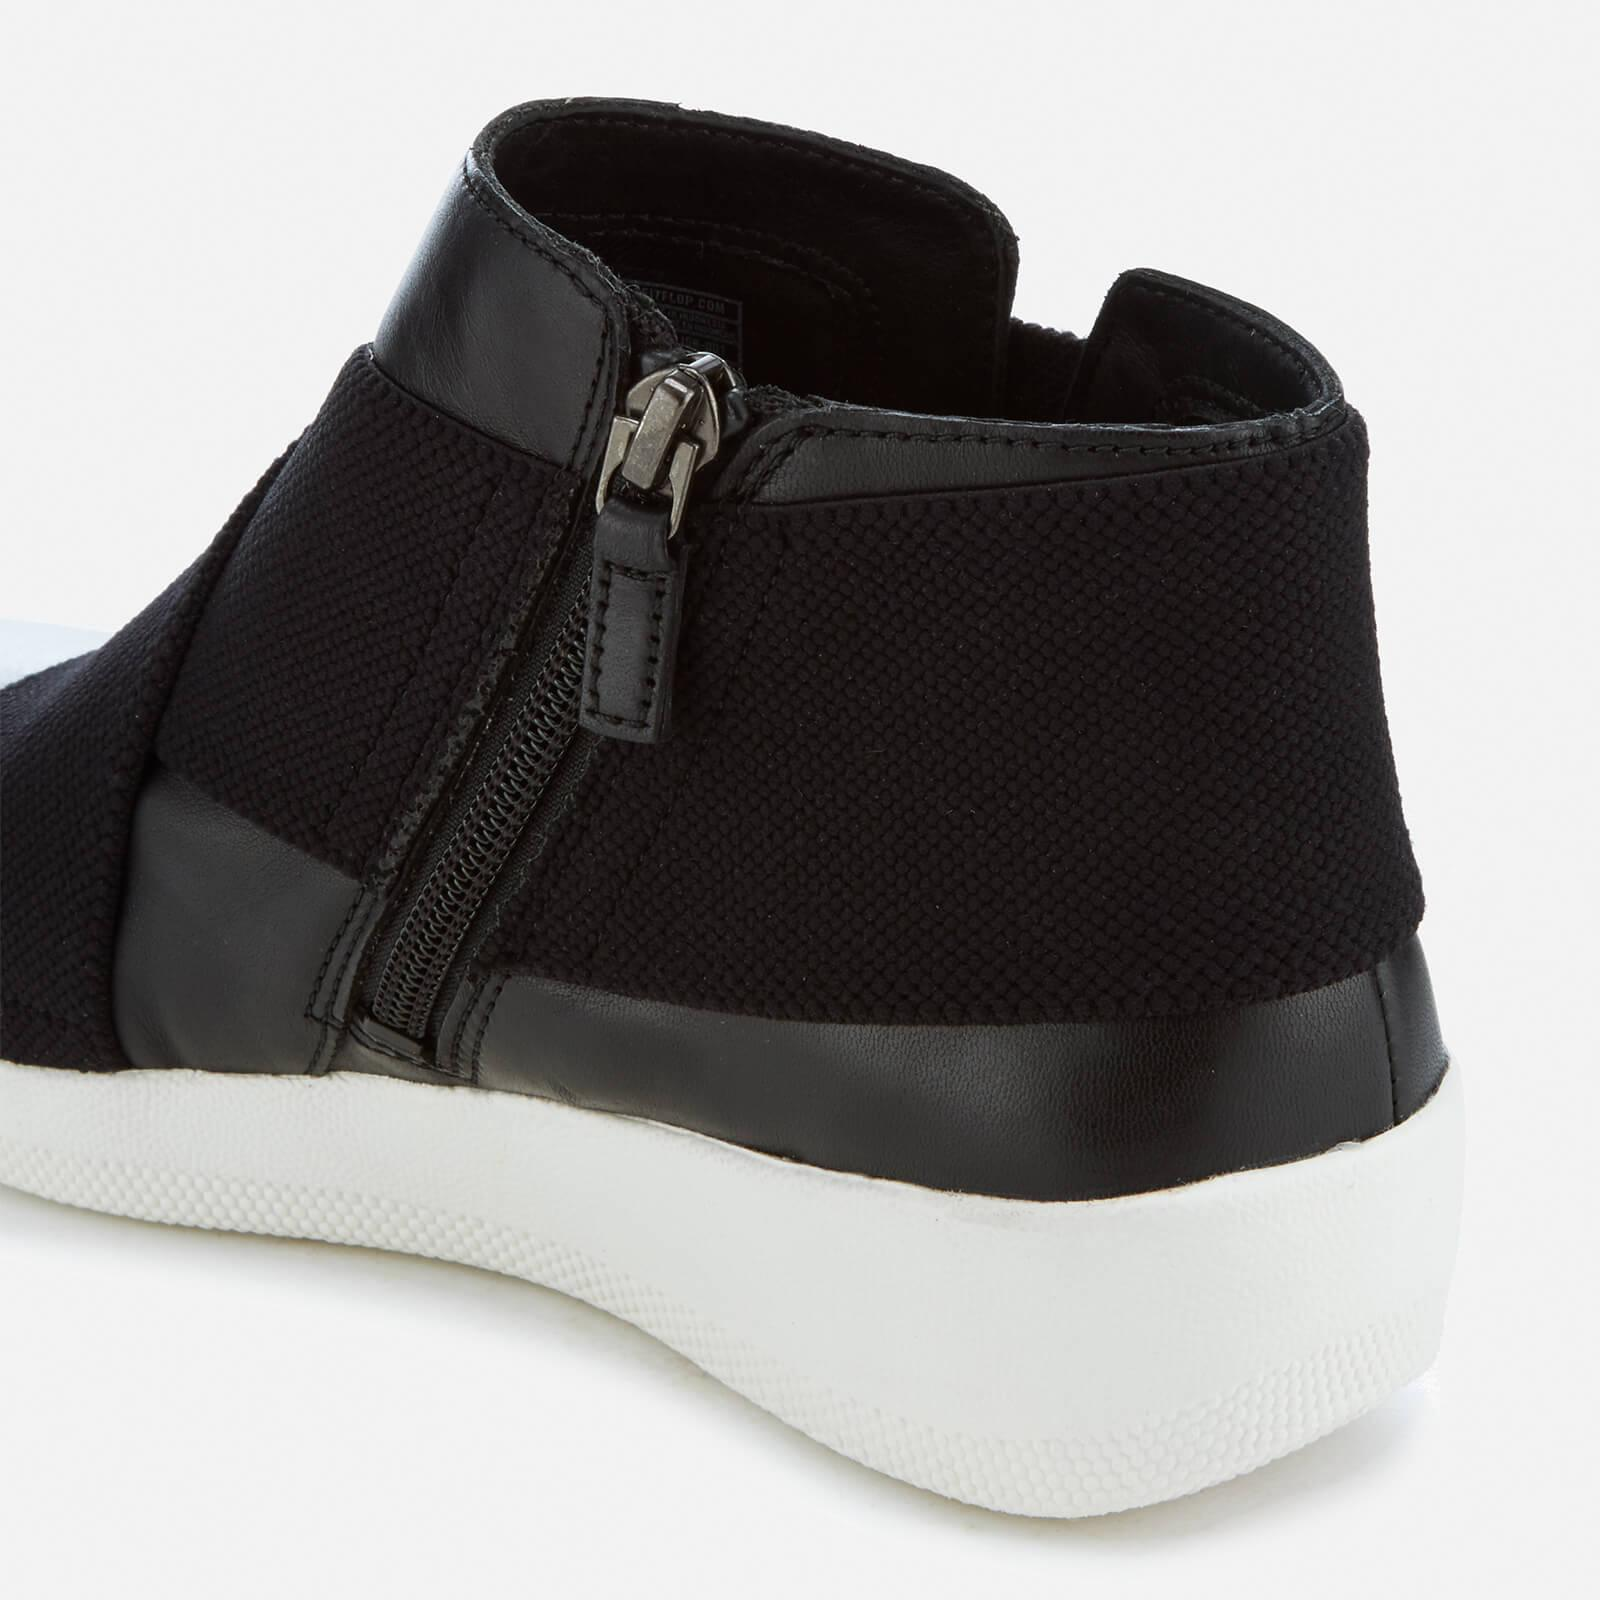 552f84d21cc Fitflop Black Superflex Leather Ankle Boots